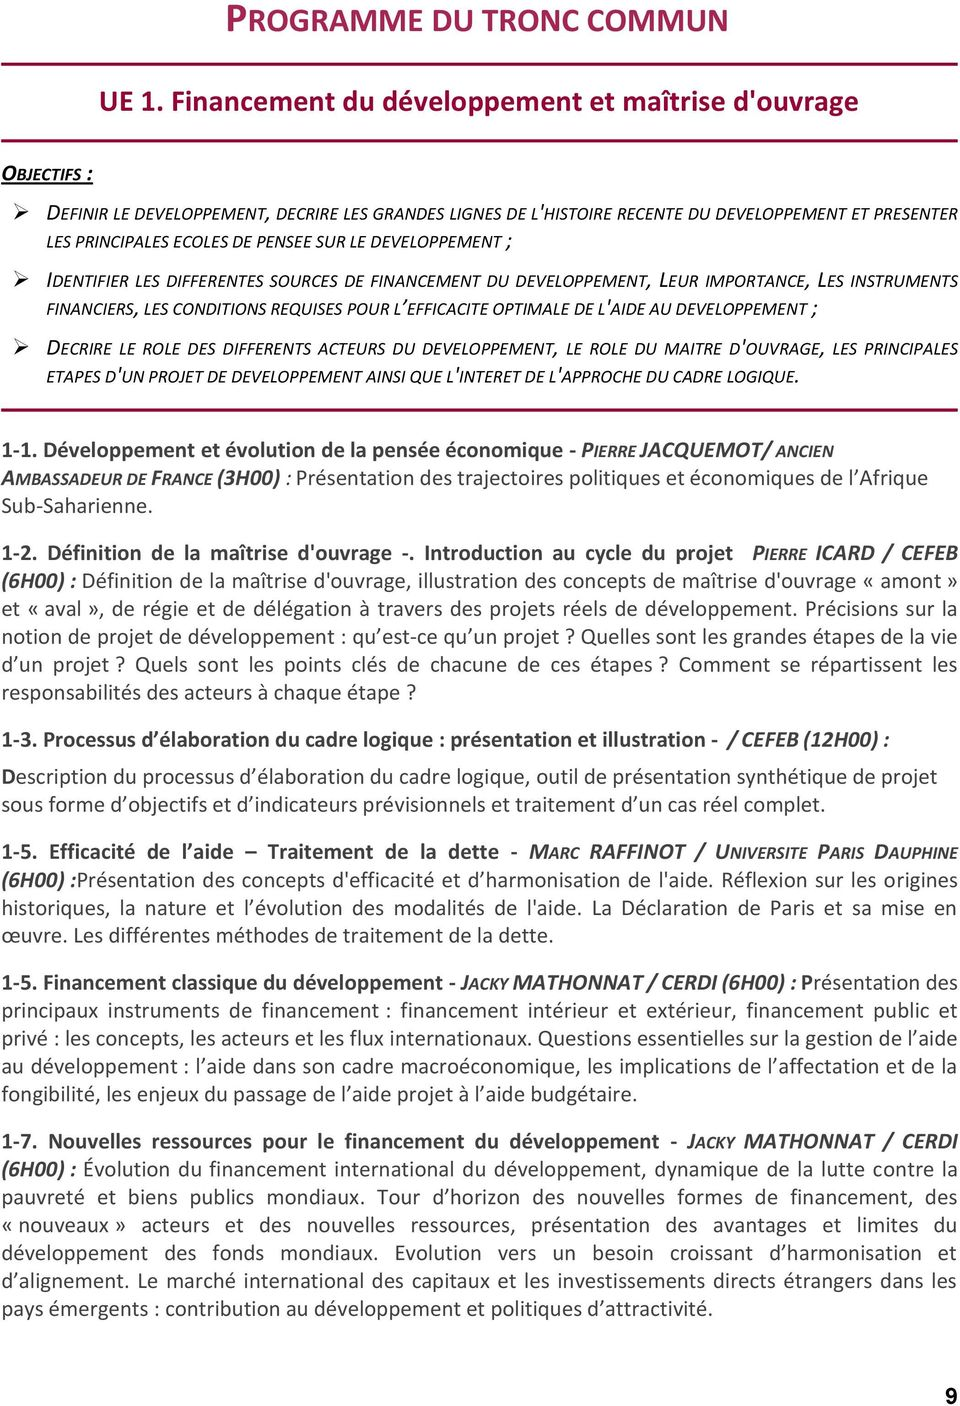 DEVELOPPEENT ; IDENTIFIER LES DIFFERENTES SOURCES DE FINANCEENT DU DEVELOPPEENT, LEUR IPORTANCE, LES INSTRUENTS FINANCIERS, LES CONDITIONS REQUISES POUR L EFFICACITE OPTIALE DE L'AIDE AU DEVELOPPEENT